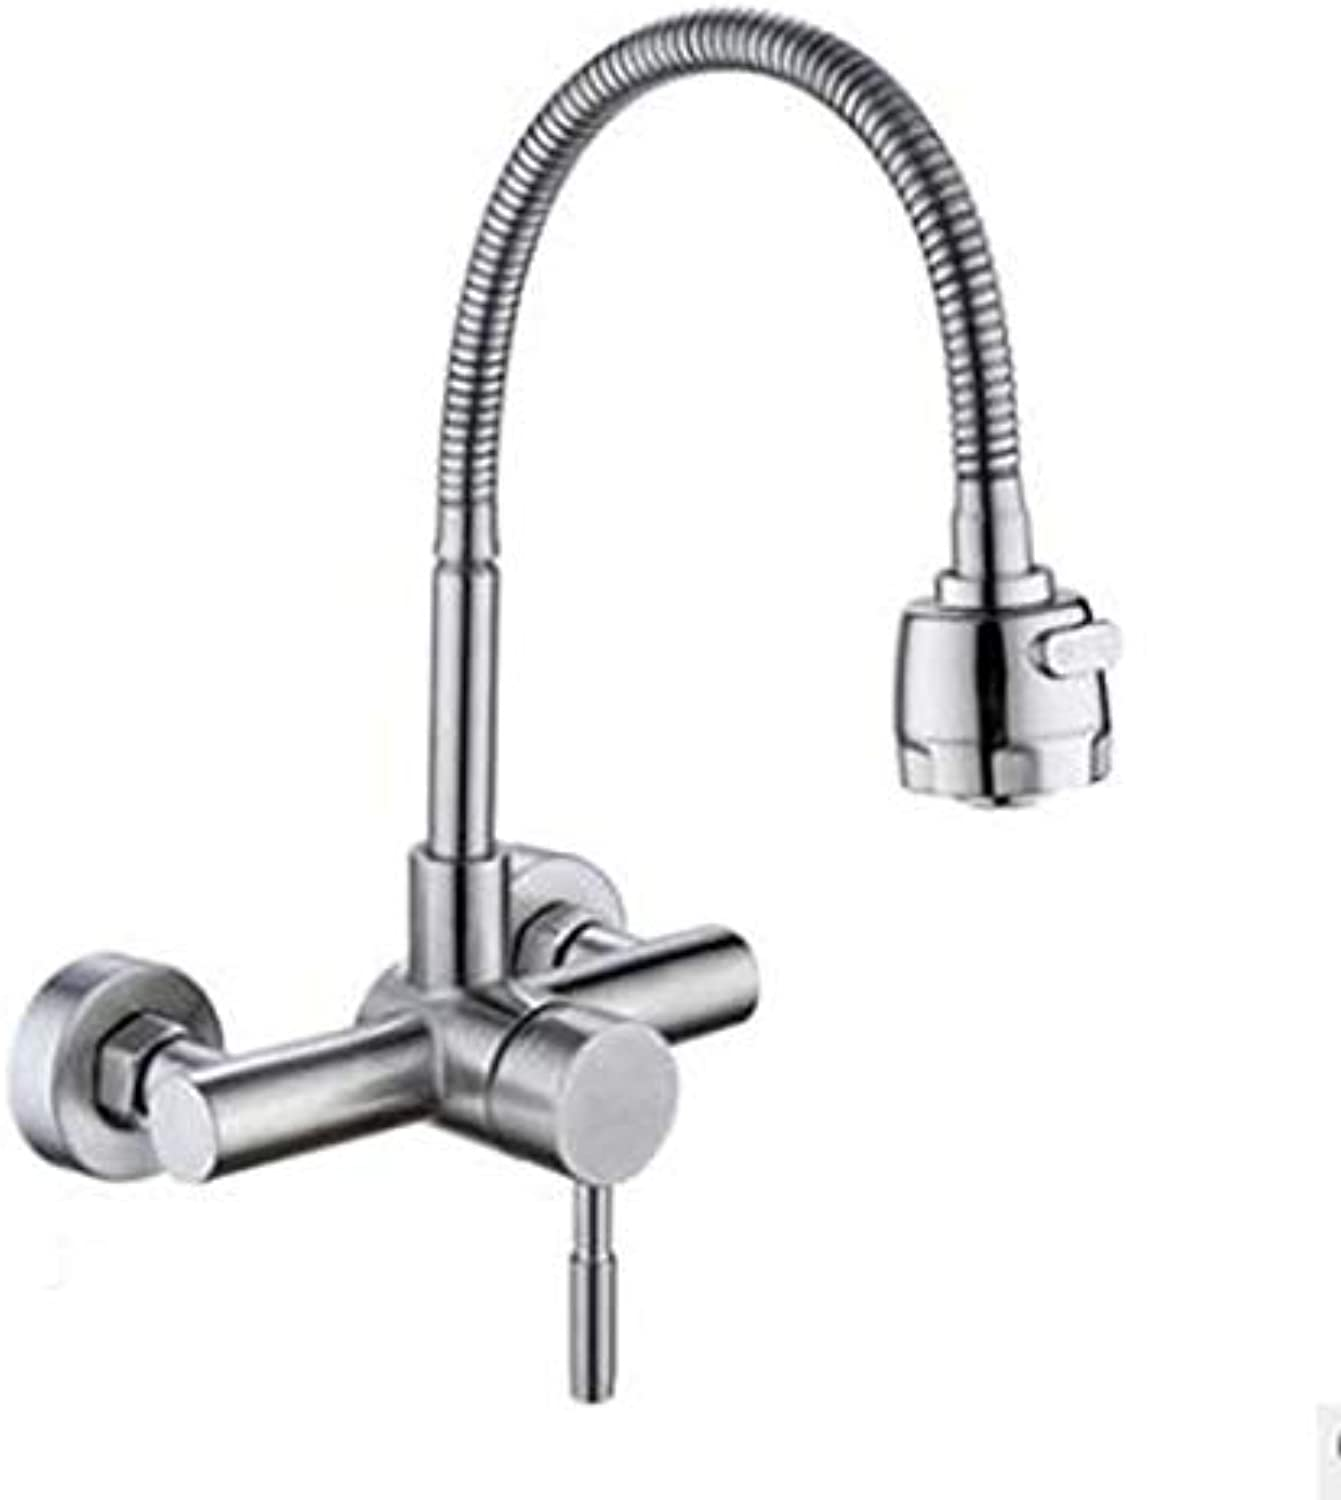 CHX Stainless Steel Swivel Kitchen Faucet Hot And Cold Wall Faucet Laundry Faucet CHXSF